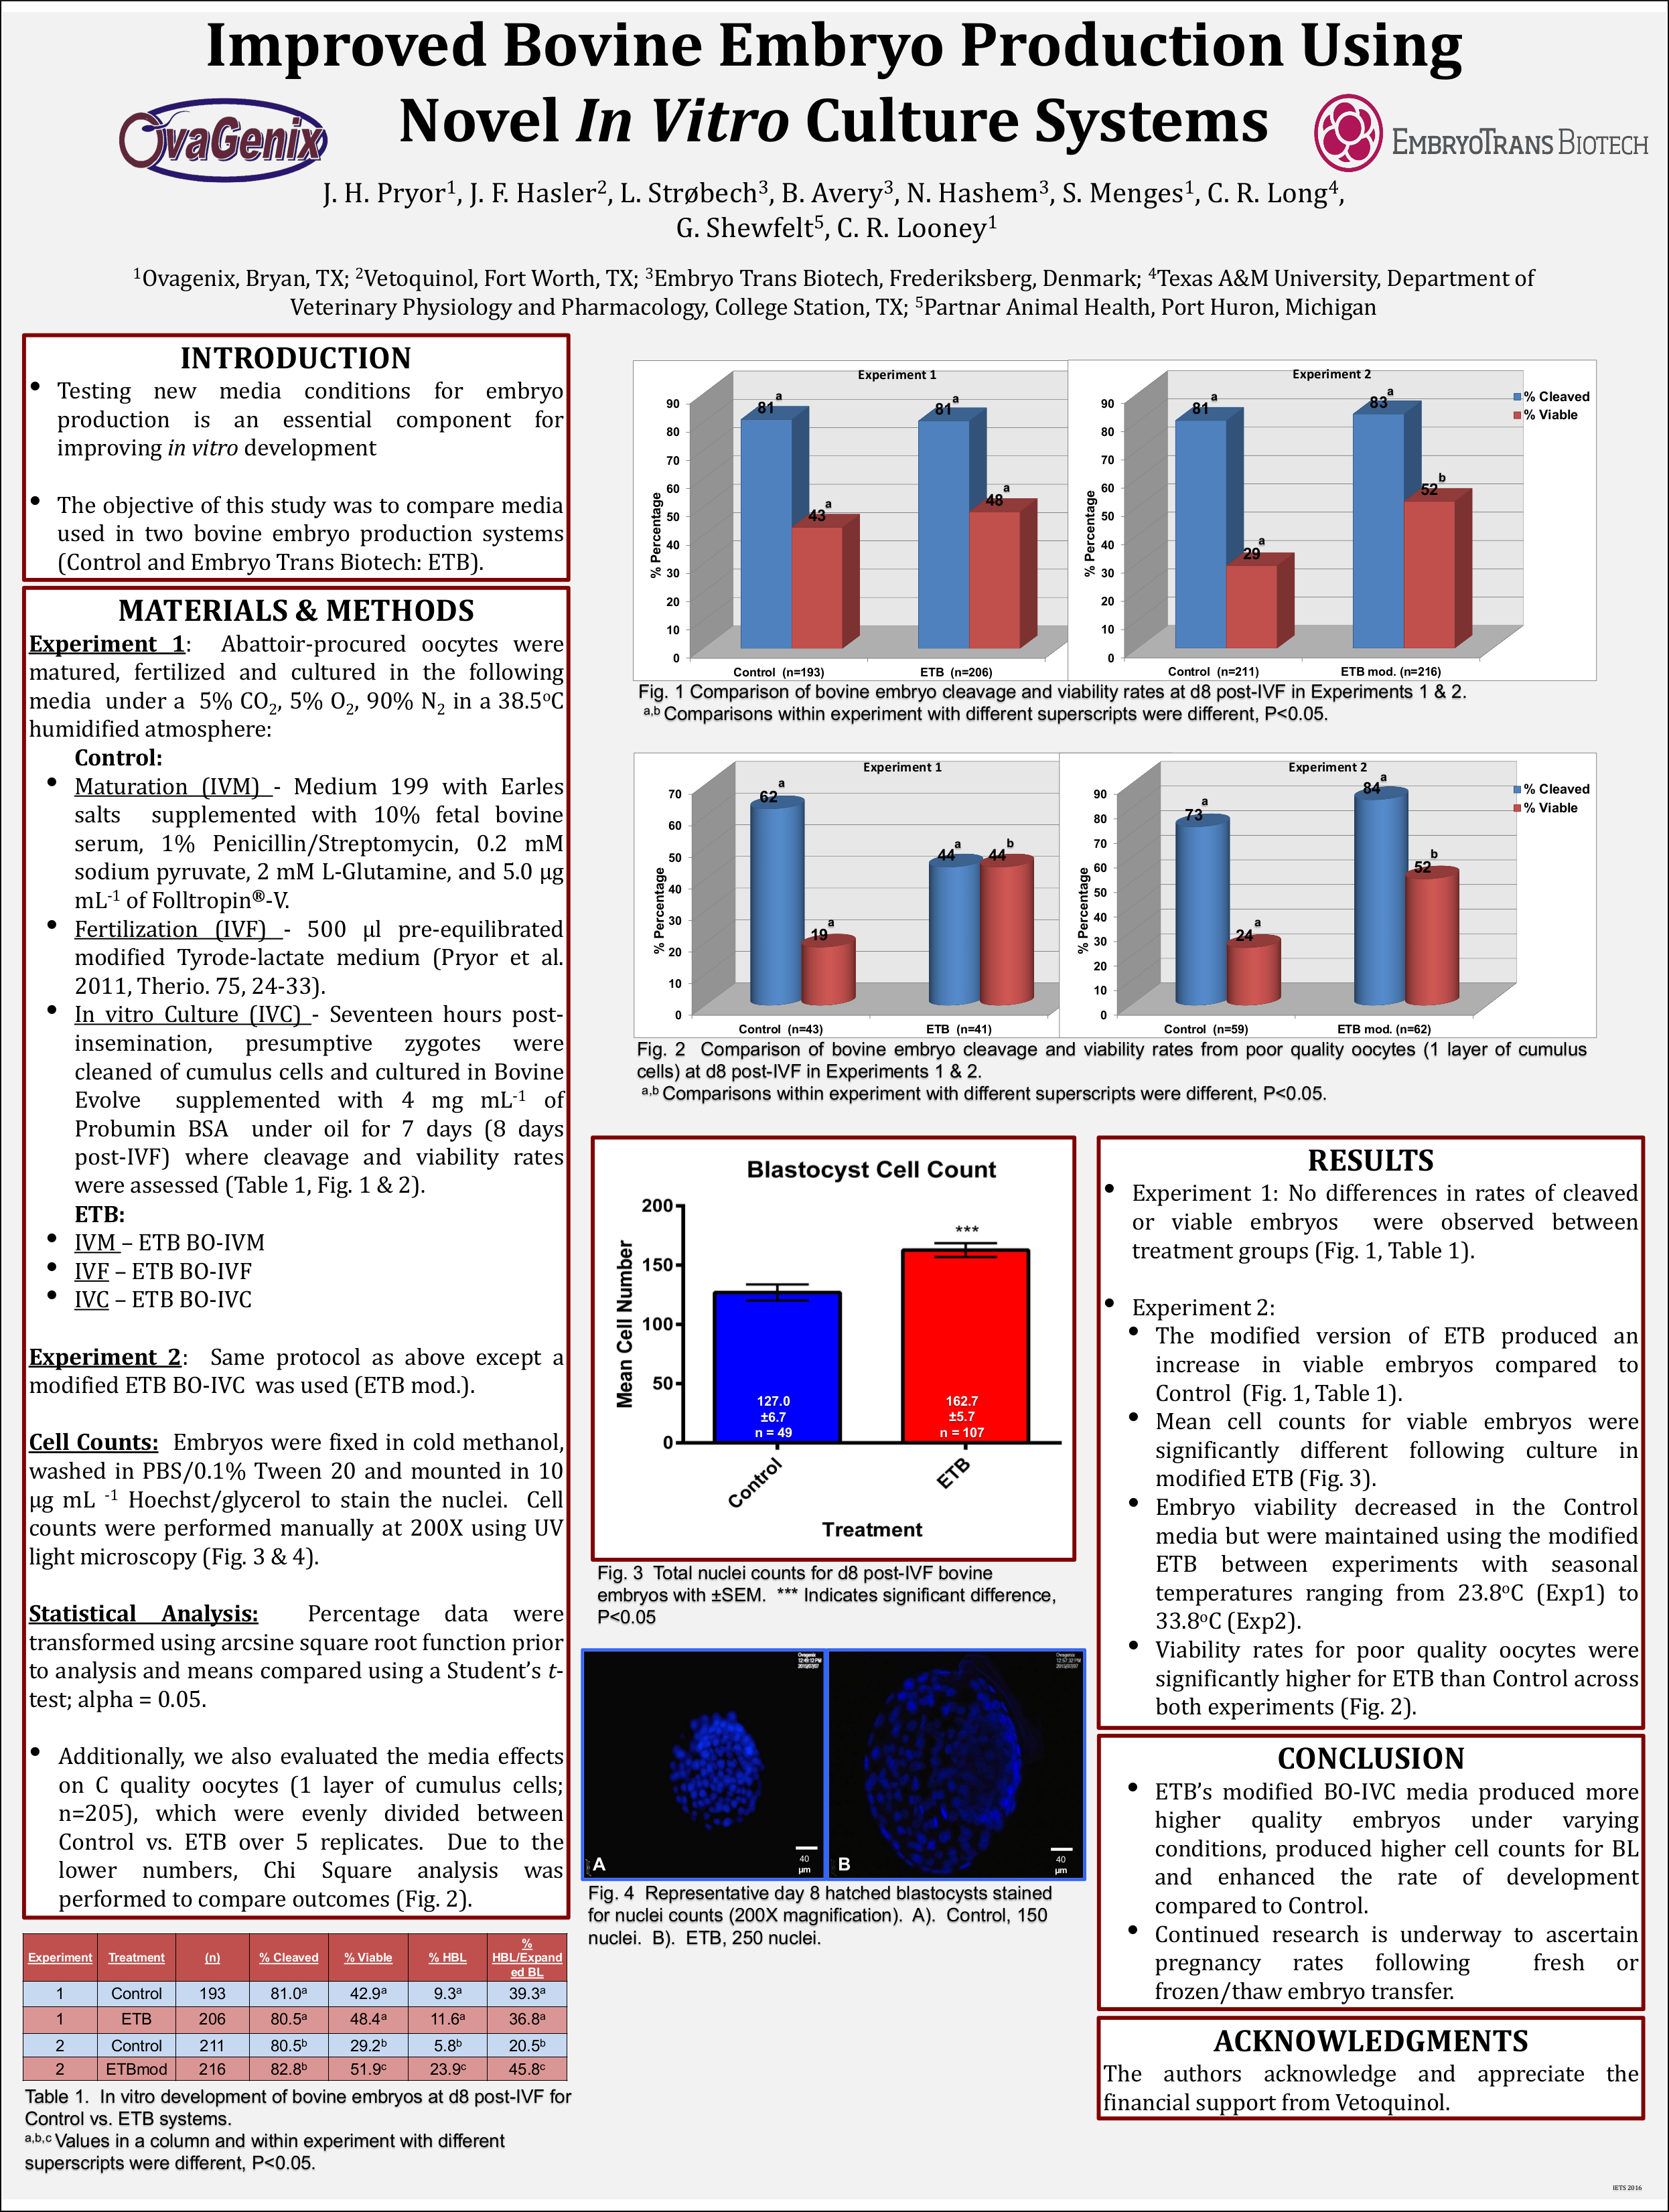 IETS 2016 Cell Count Poster